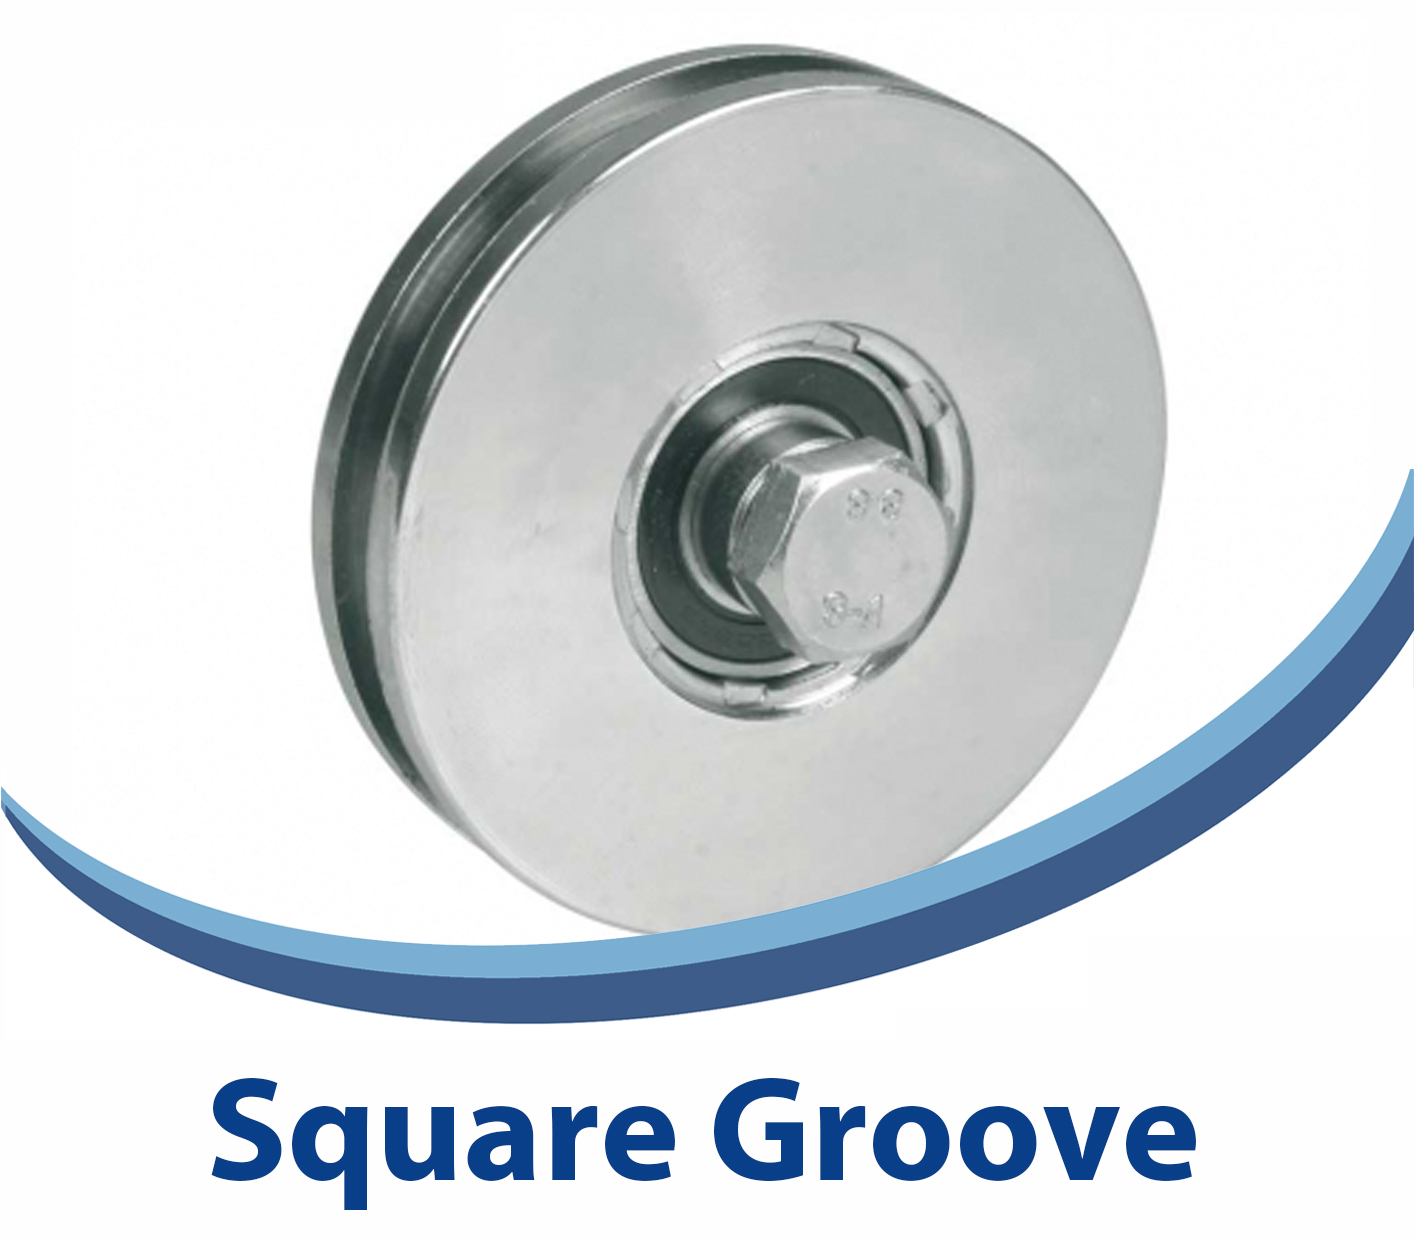 Square Groove